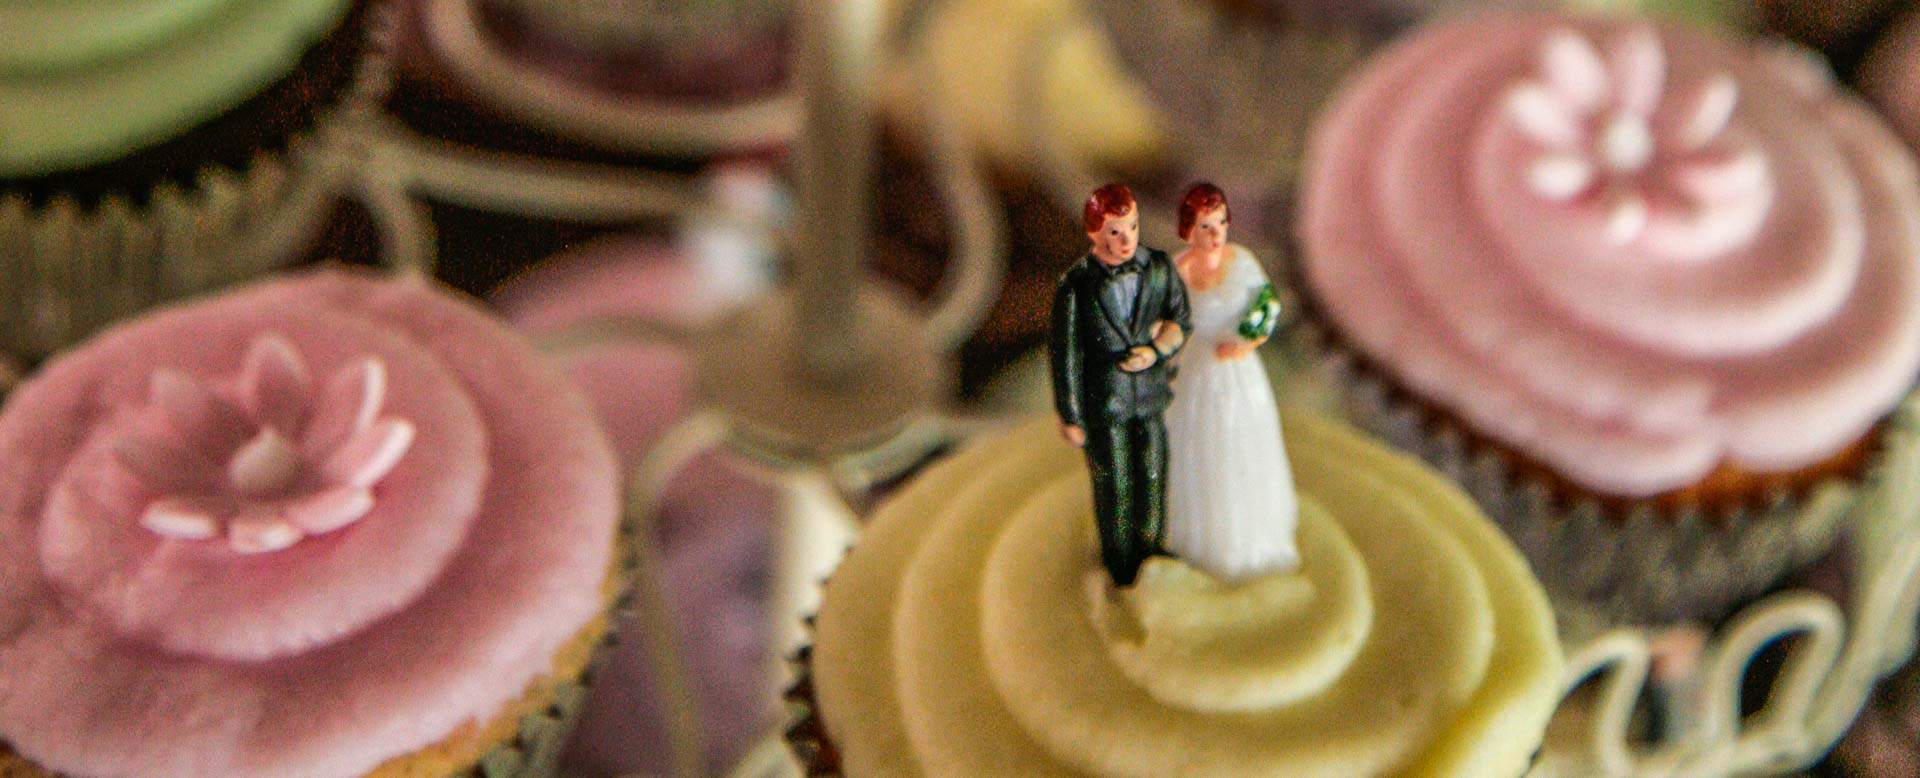 Wedding Photography Adelaide. Wedding Cup Cakes.